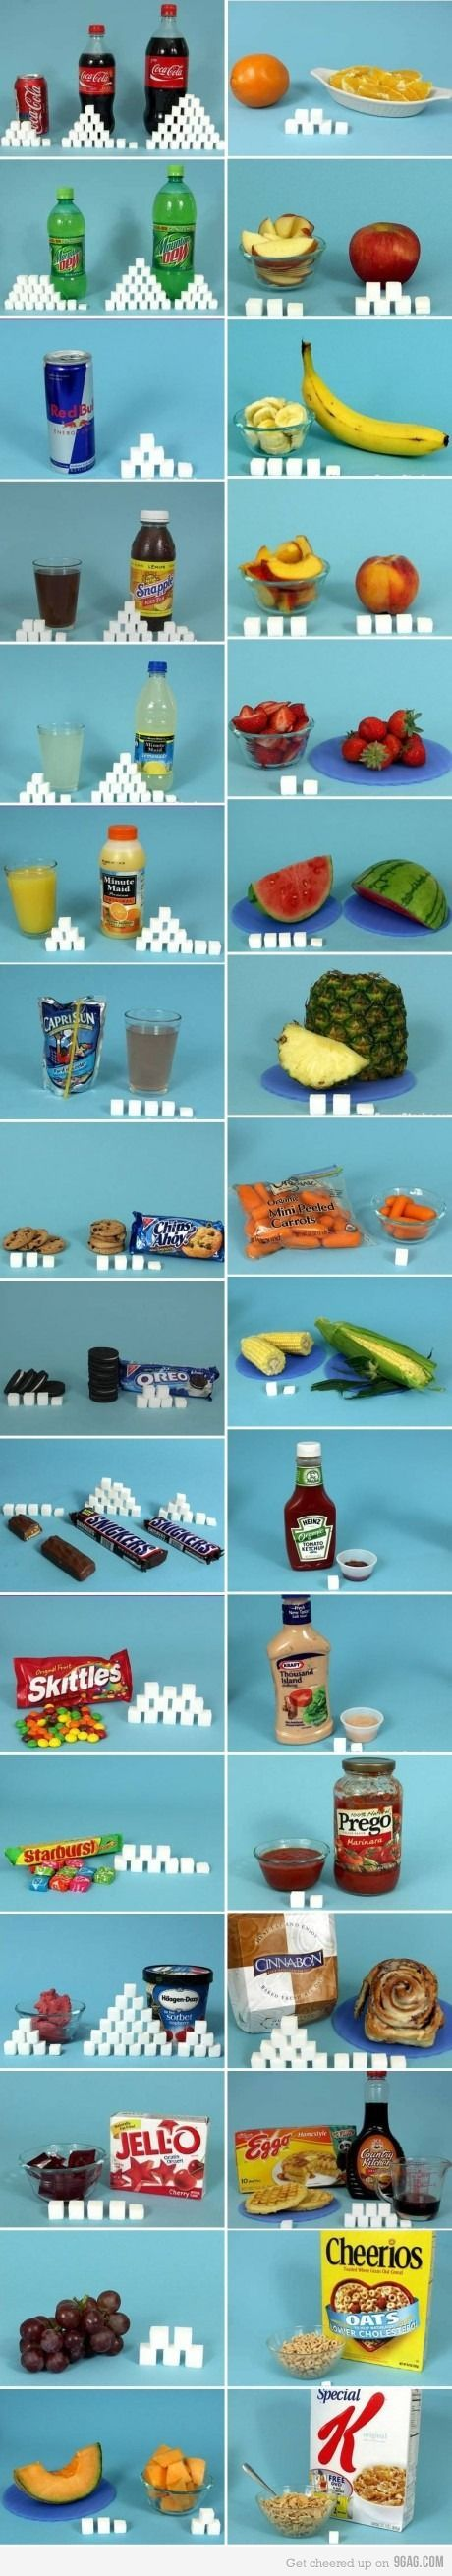 Would you sit & eat 21 sugar cubes - well you just did if you drank a bottle of REG softdrink! makes you think..this is something we should be looking at more often! 4th Grade: Food & Nutrition